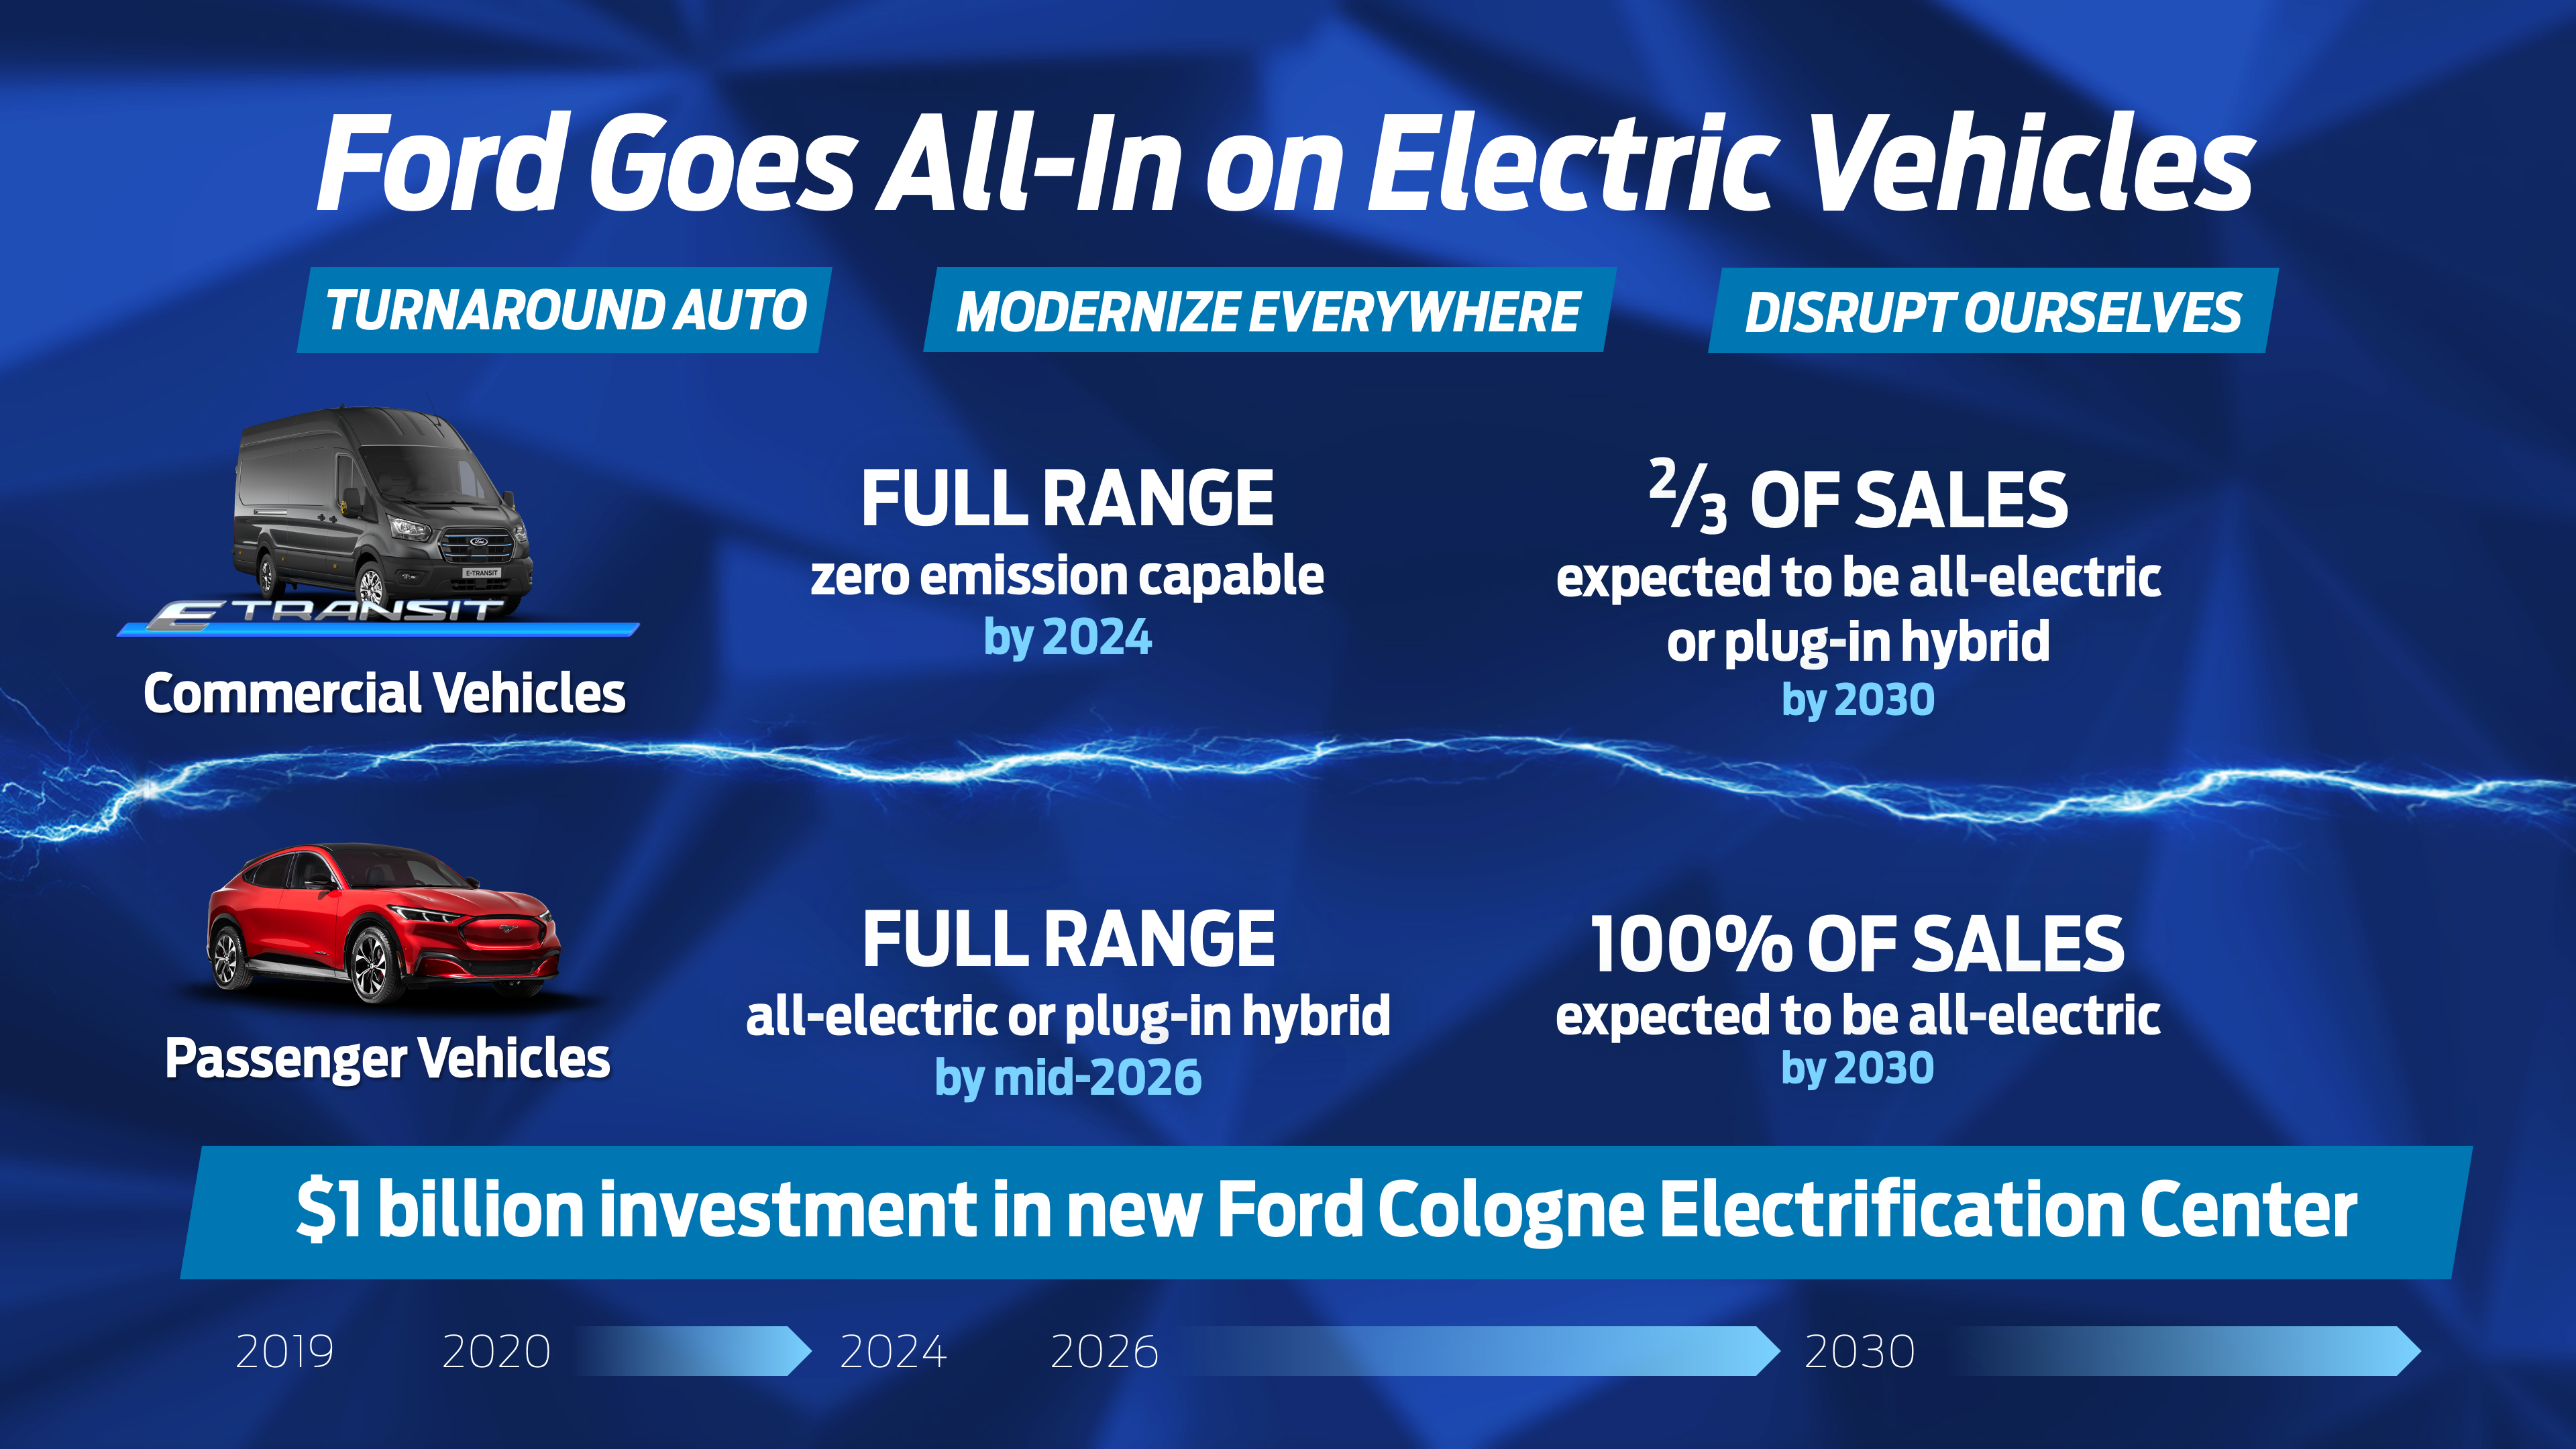 Ford moving to be all-electric in next 9 years